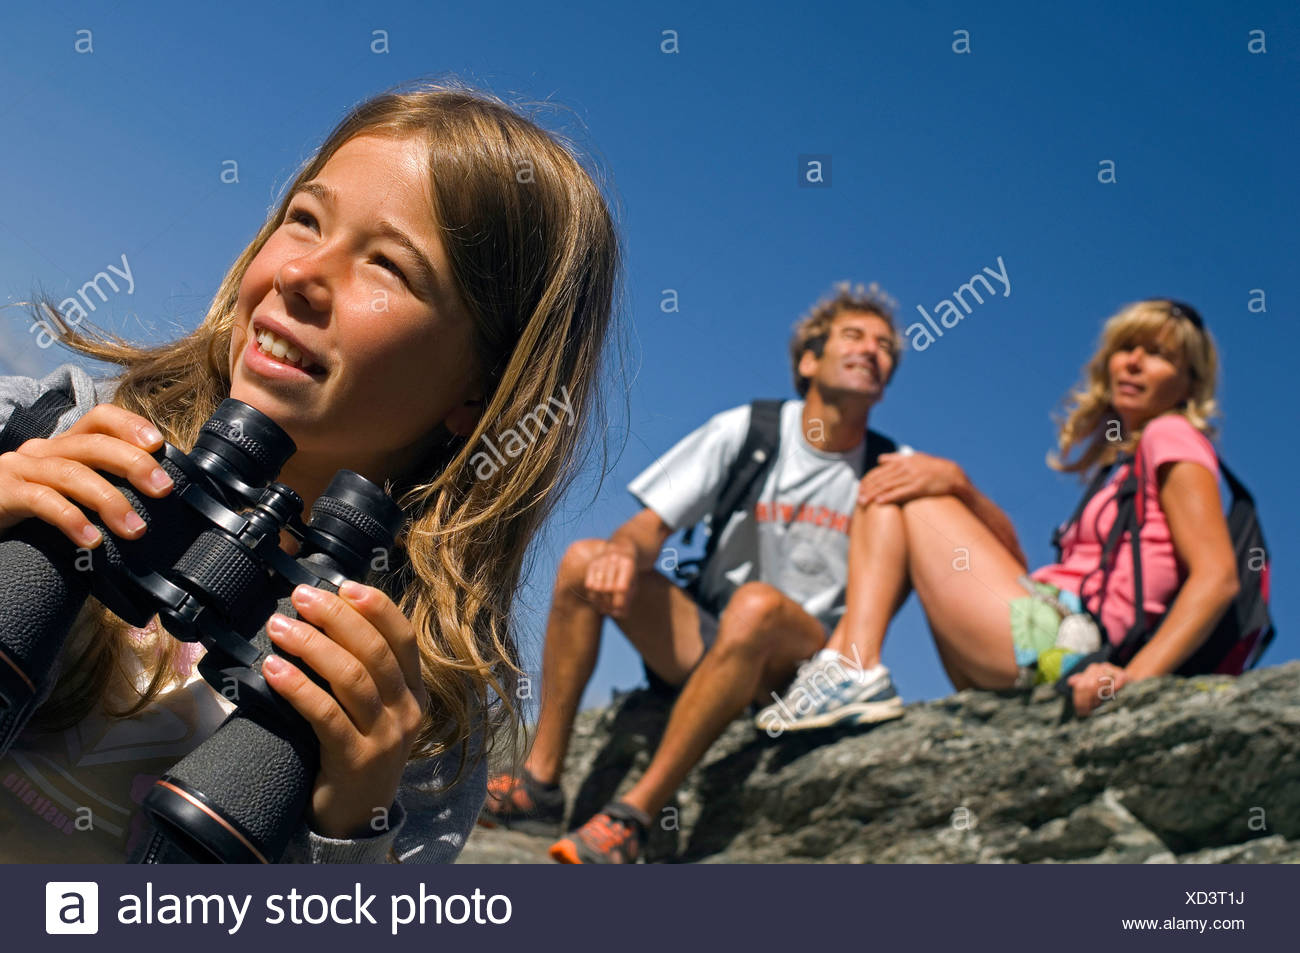 familiy on a mountain trail, girl with a field glass, France - Stock Image